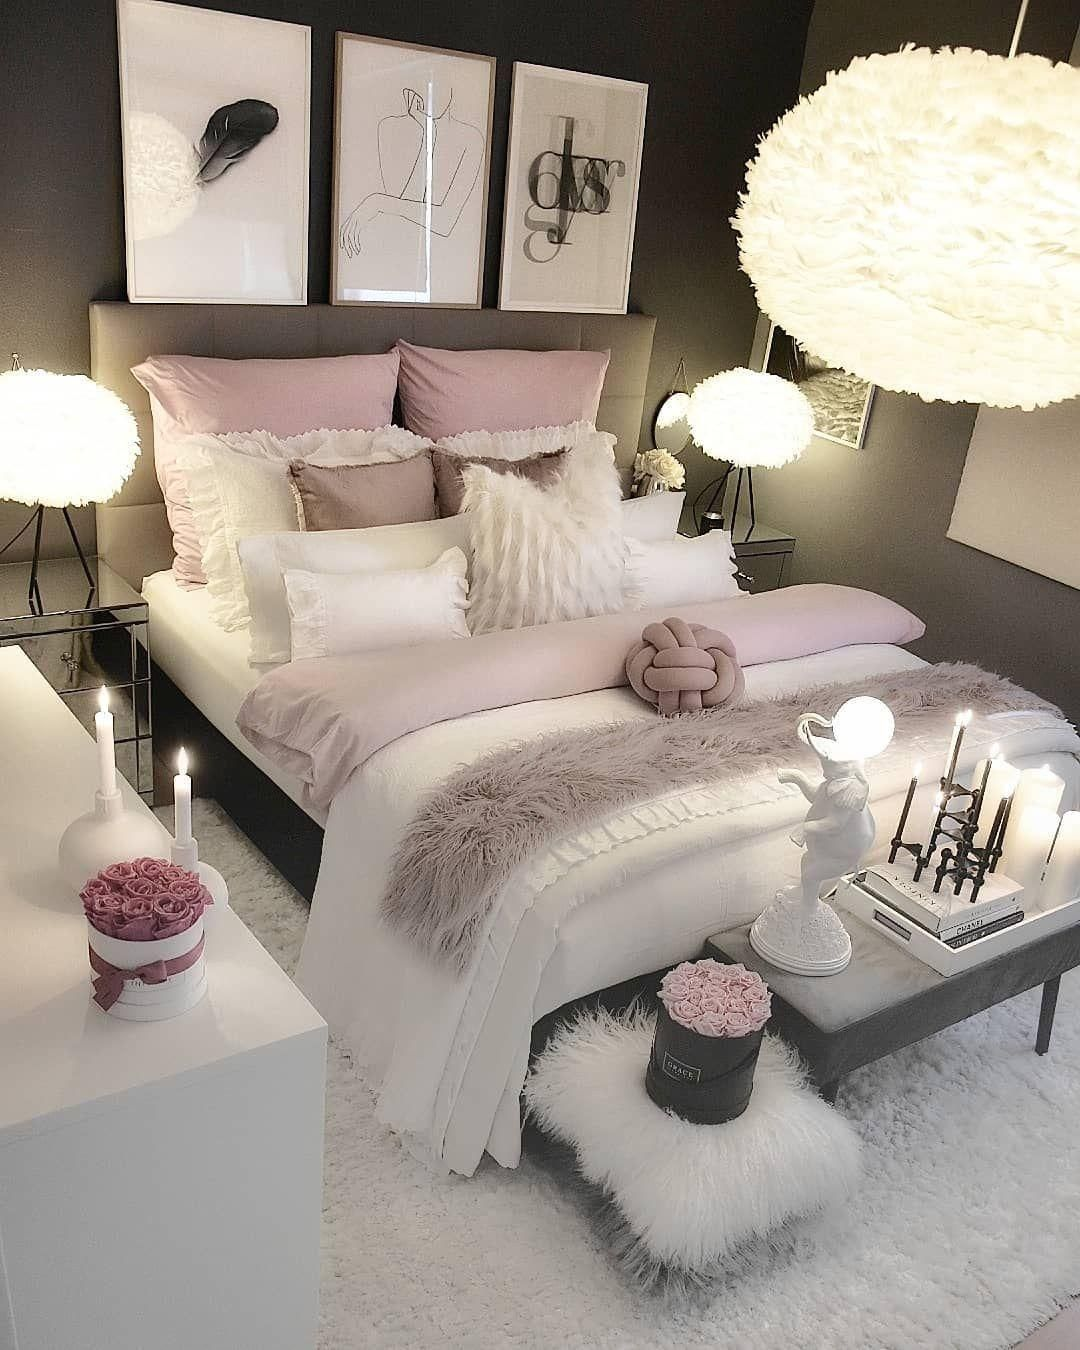 Pin on Deco Chambre Ideen